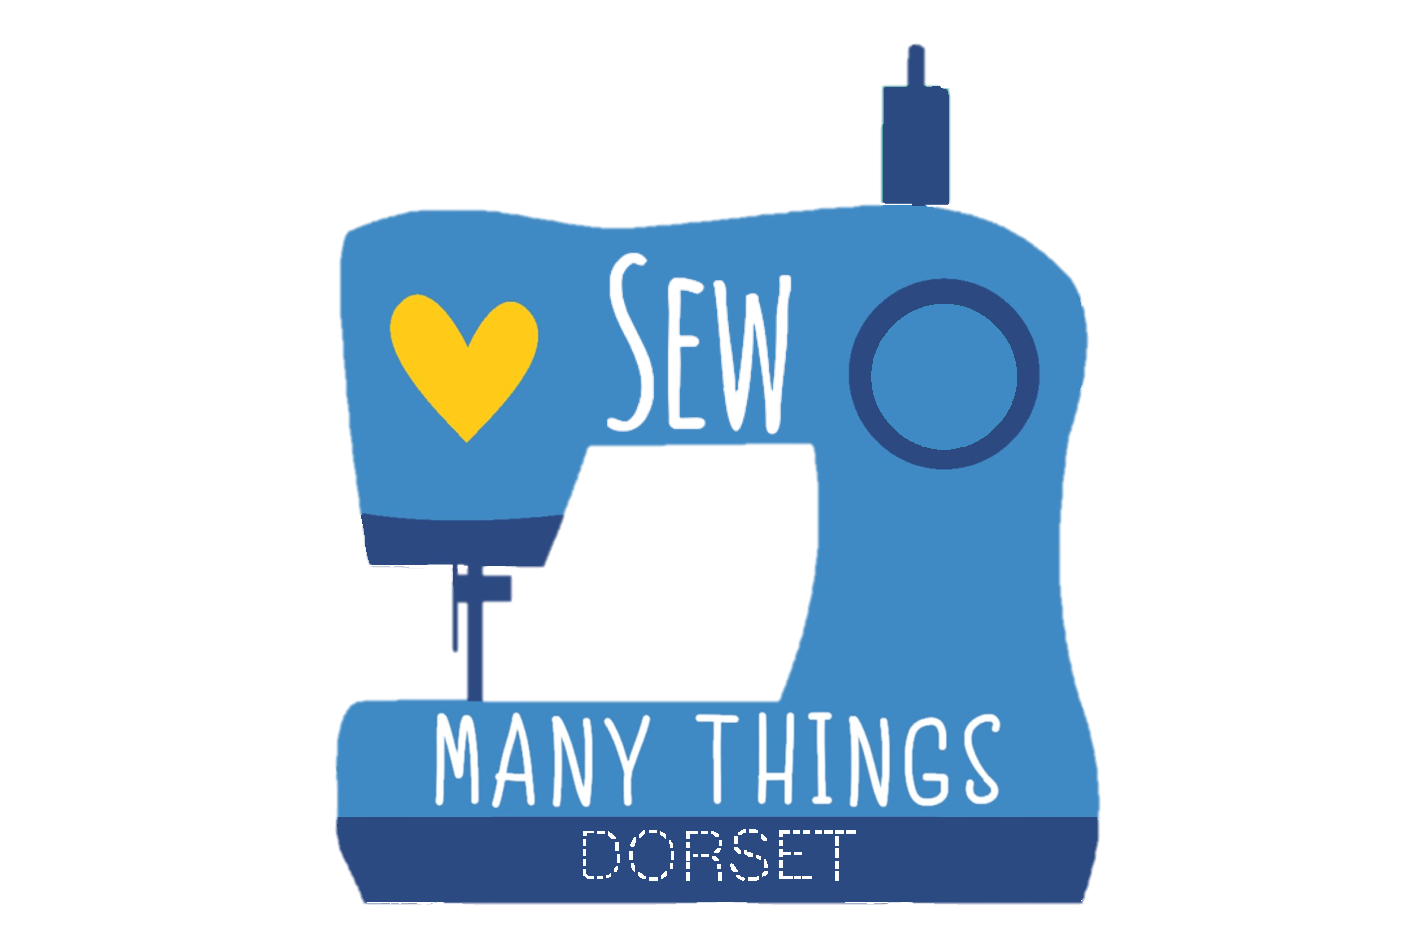 Sew many things!